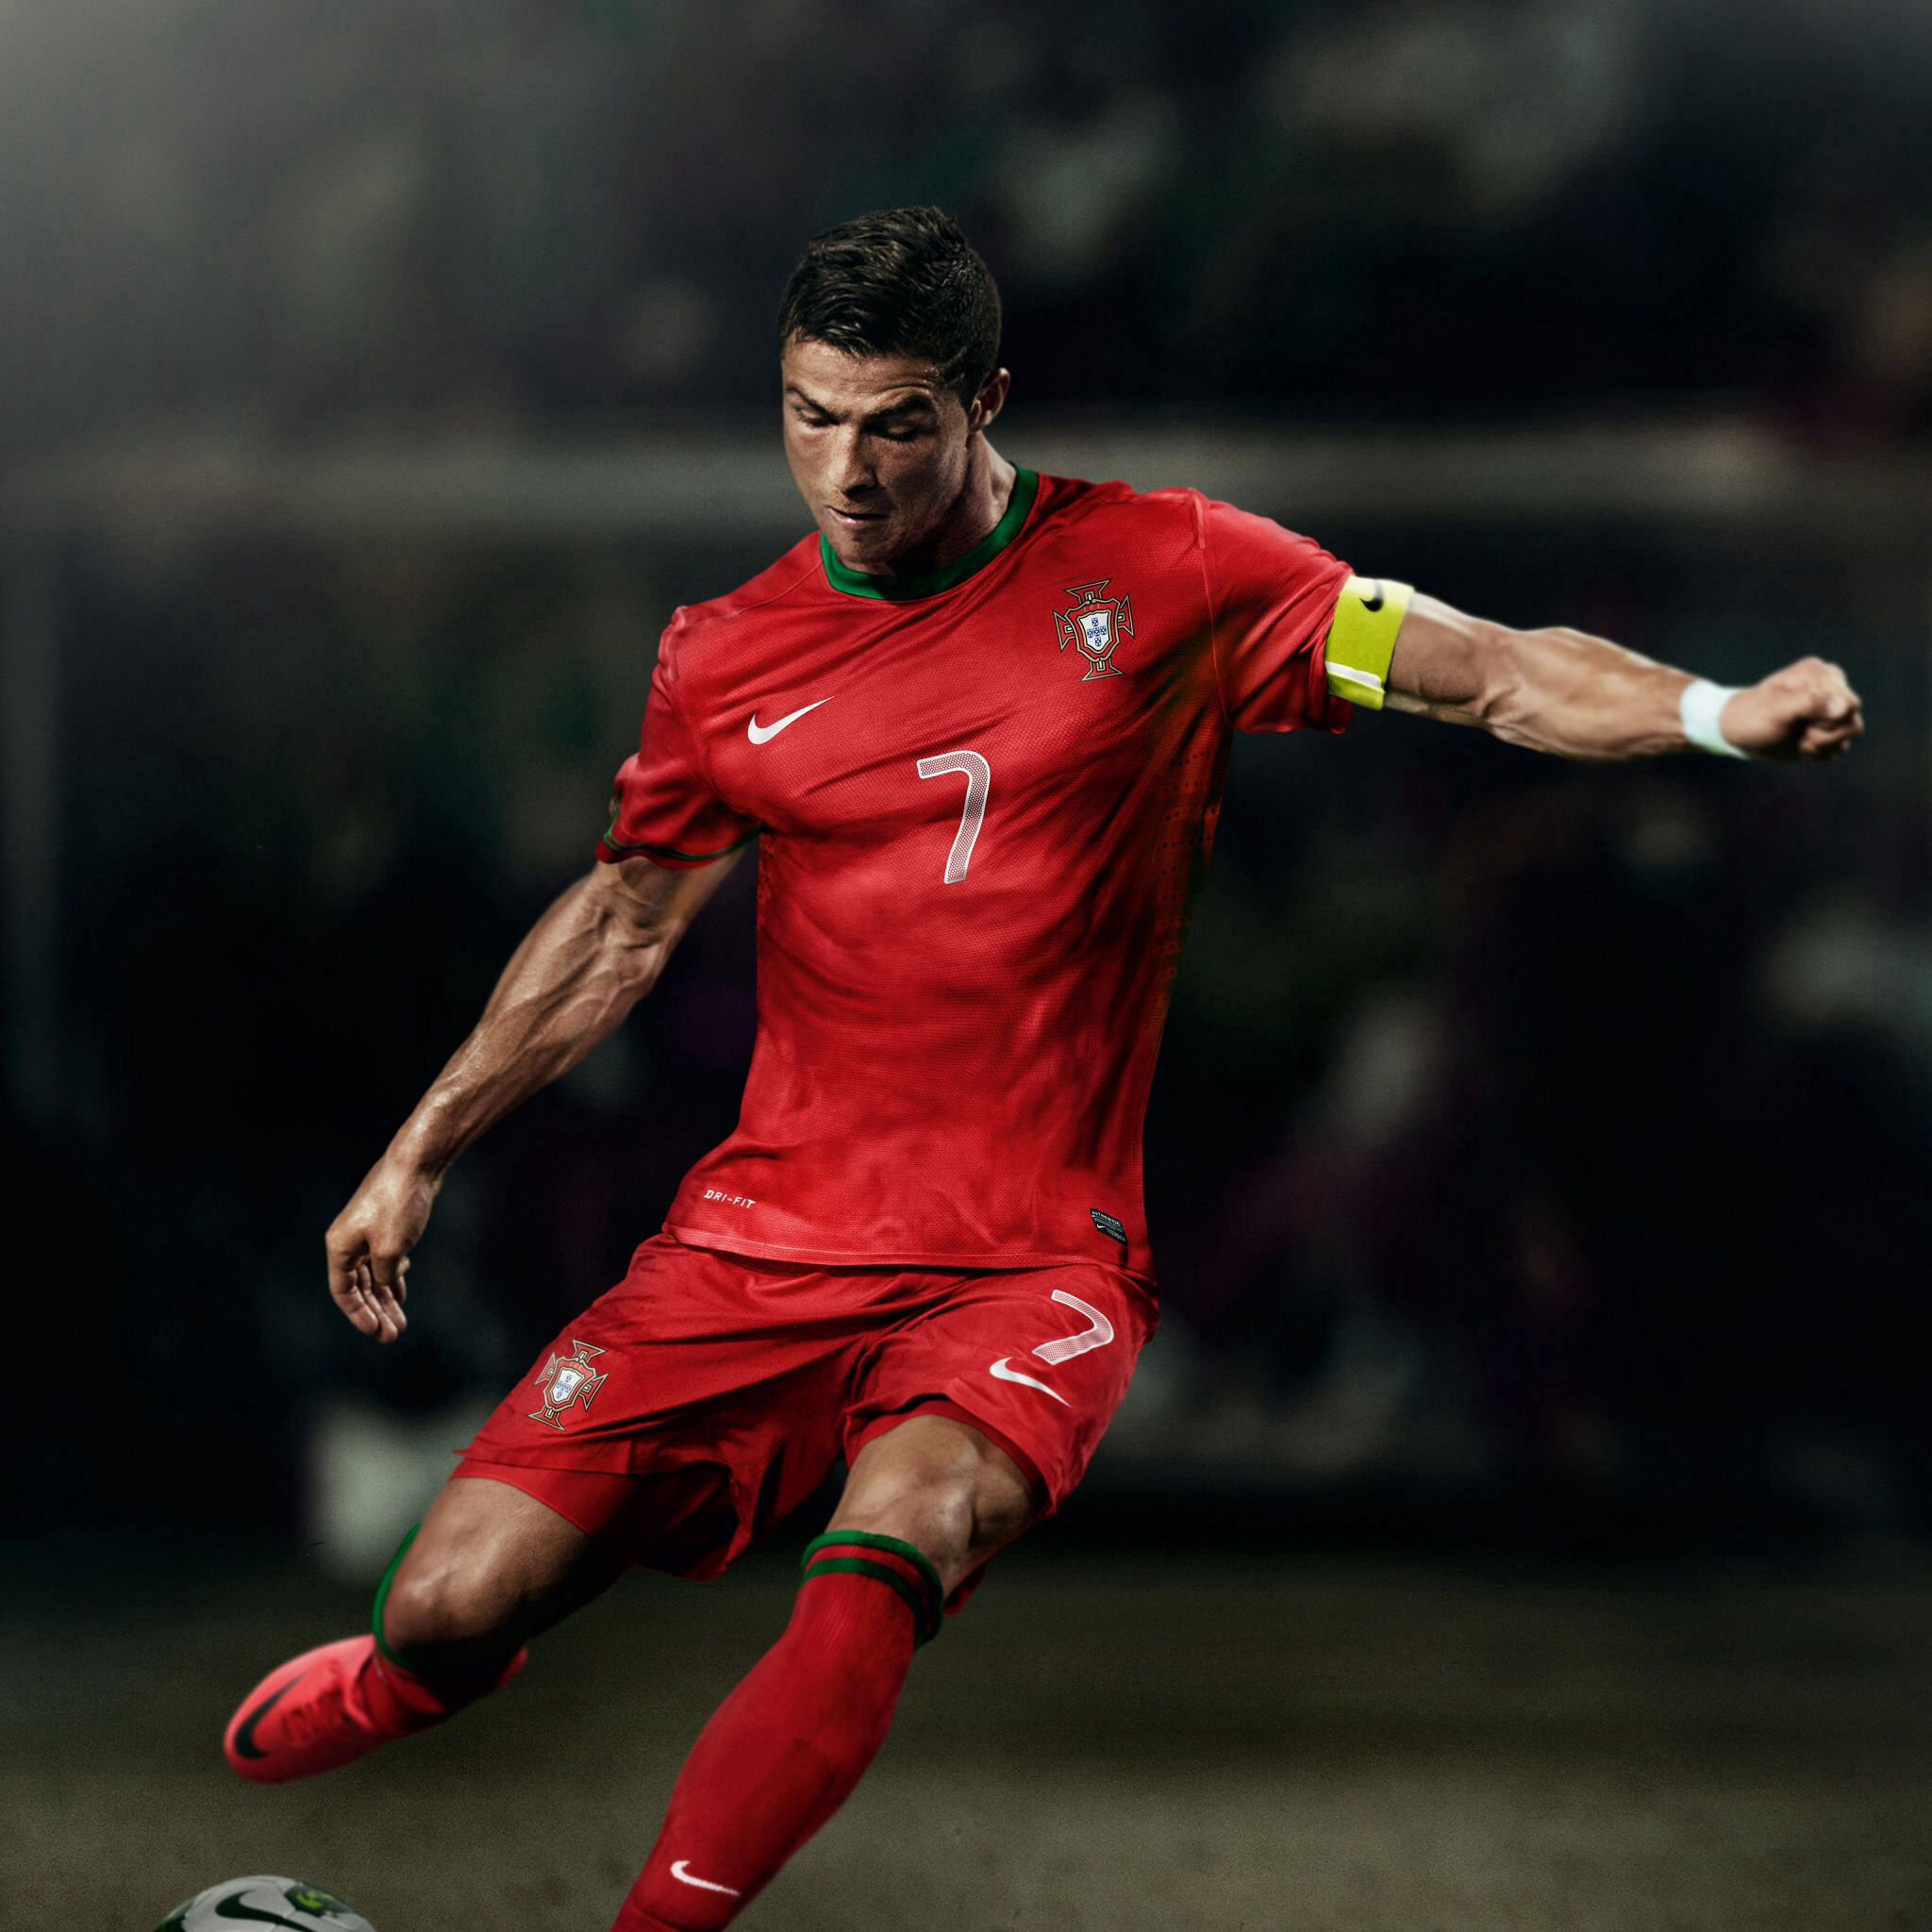 Best player ever Ronaldo wallpapers, Cristiano ronaldo